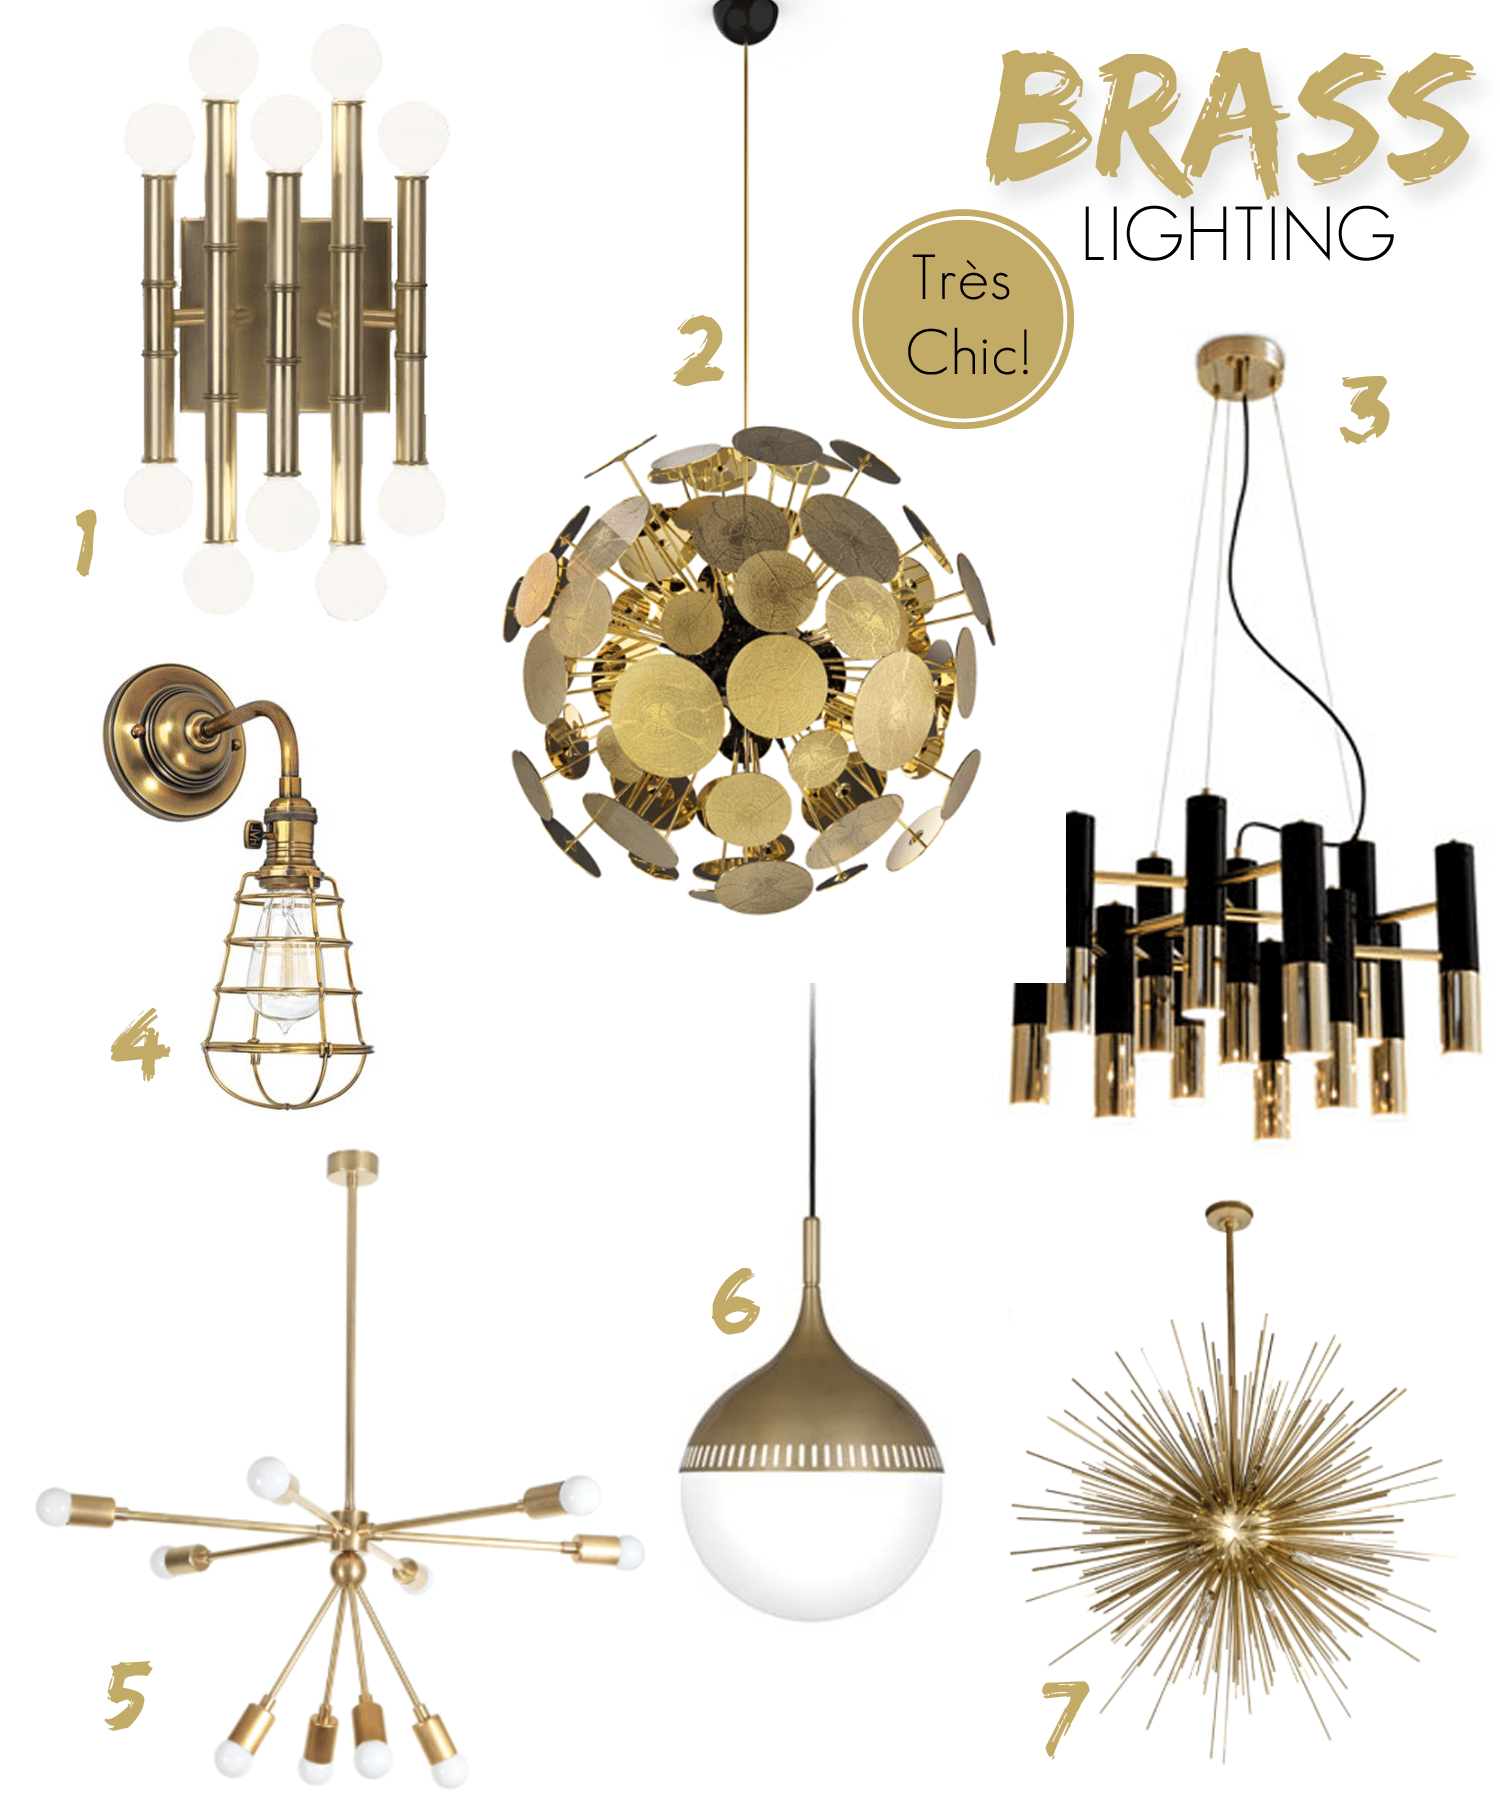 Brass Kitchen Wall Decor : Home decor archives bewhatwelove